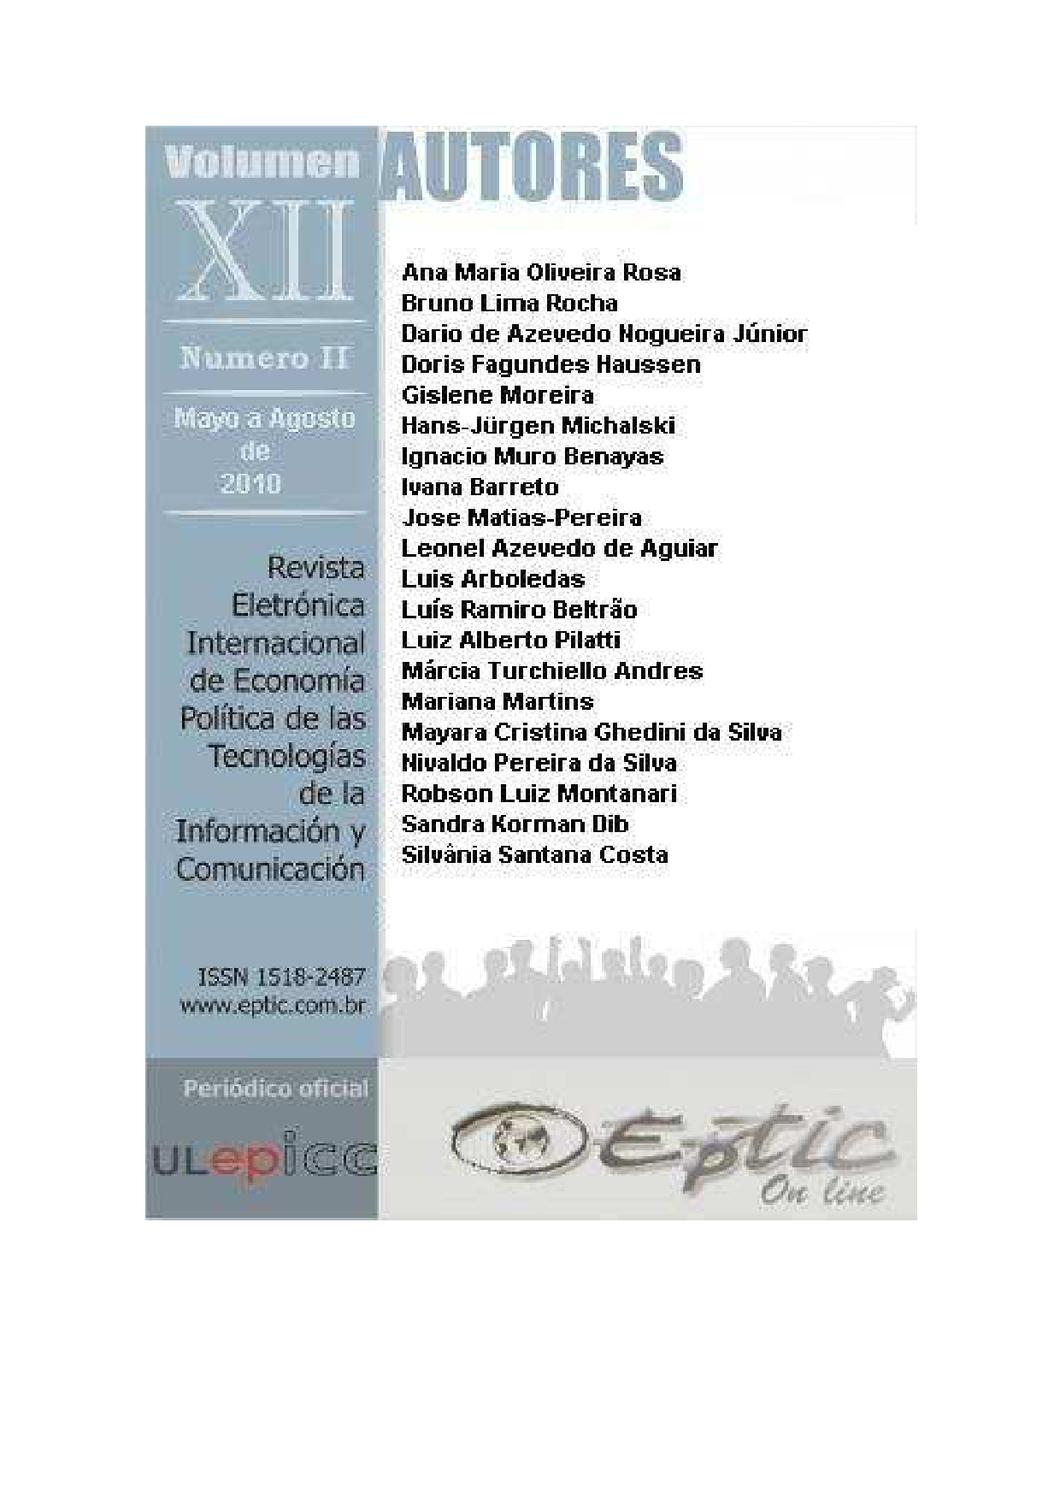 Revista completa v12 n 2 by eptic portal issuu fandeluxe Gallery